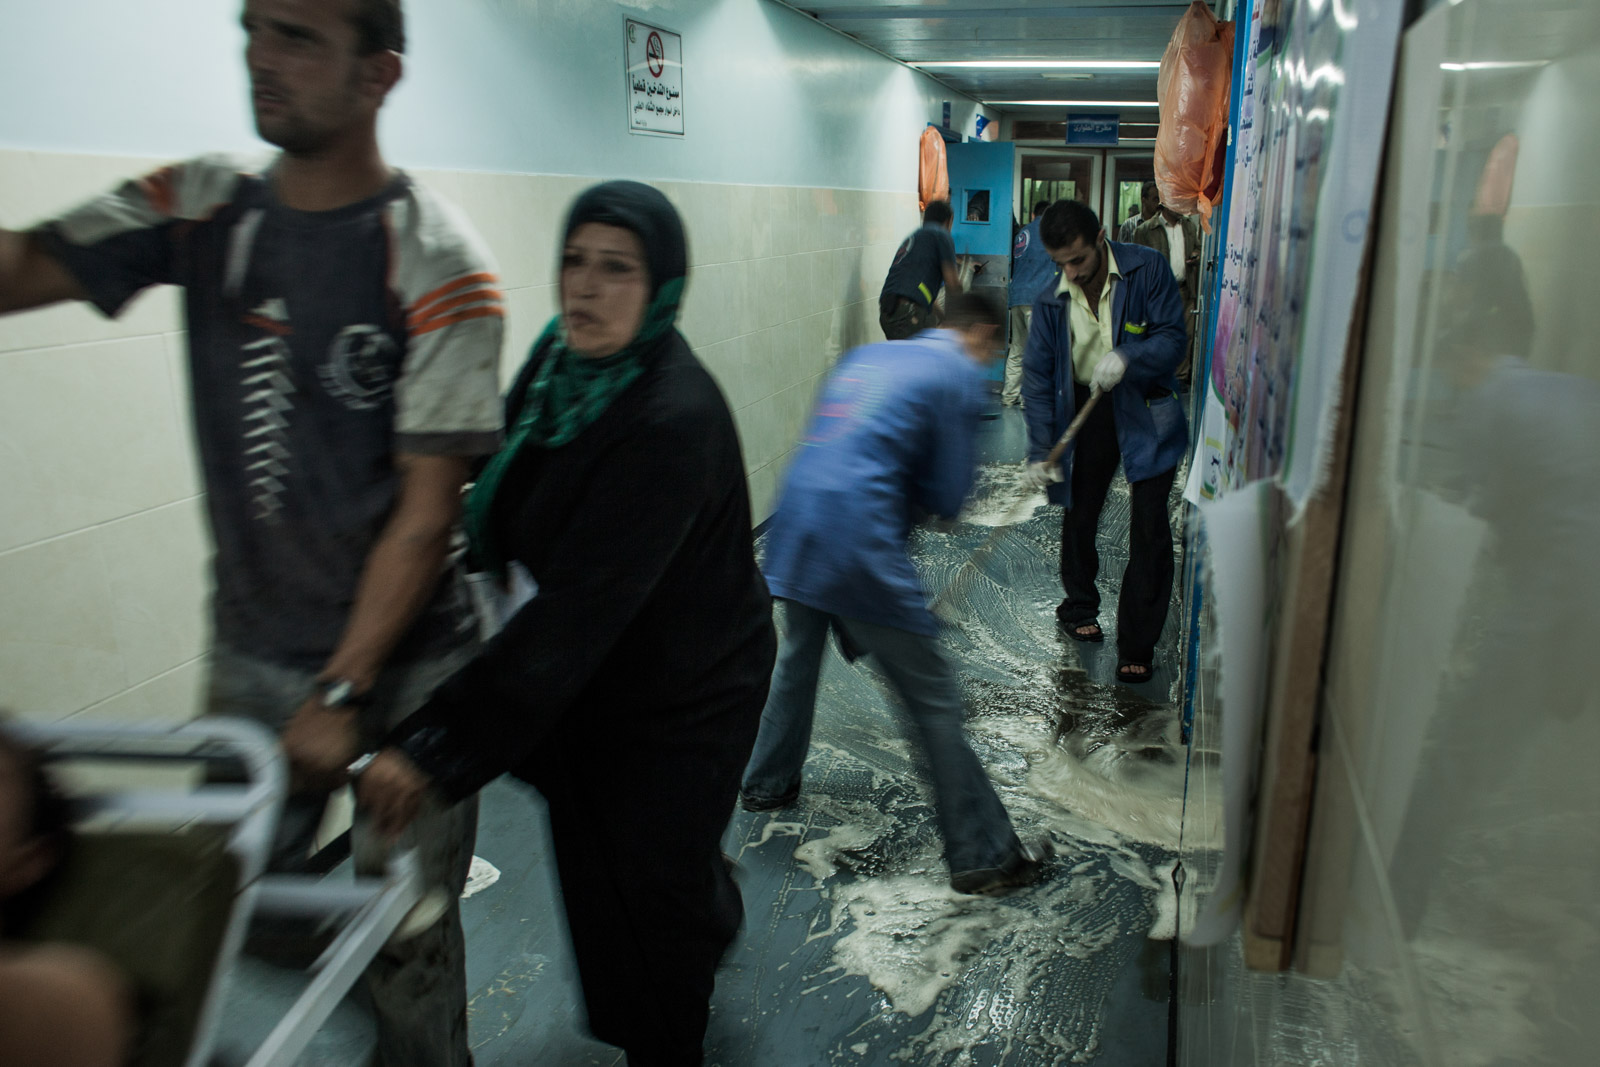 Gaza City, Gaza - November 10, 2012: Janitors clean blood off the floor in the hallway of Shifa hospital in Gaza, while numerous patients are transferred from the emergency unit to the surgery rooms while air strikes in Gaza strip continue, increasing the tensions even before the Israeli military operation Pillars of Cloud officially began.